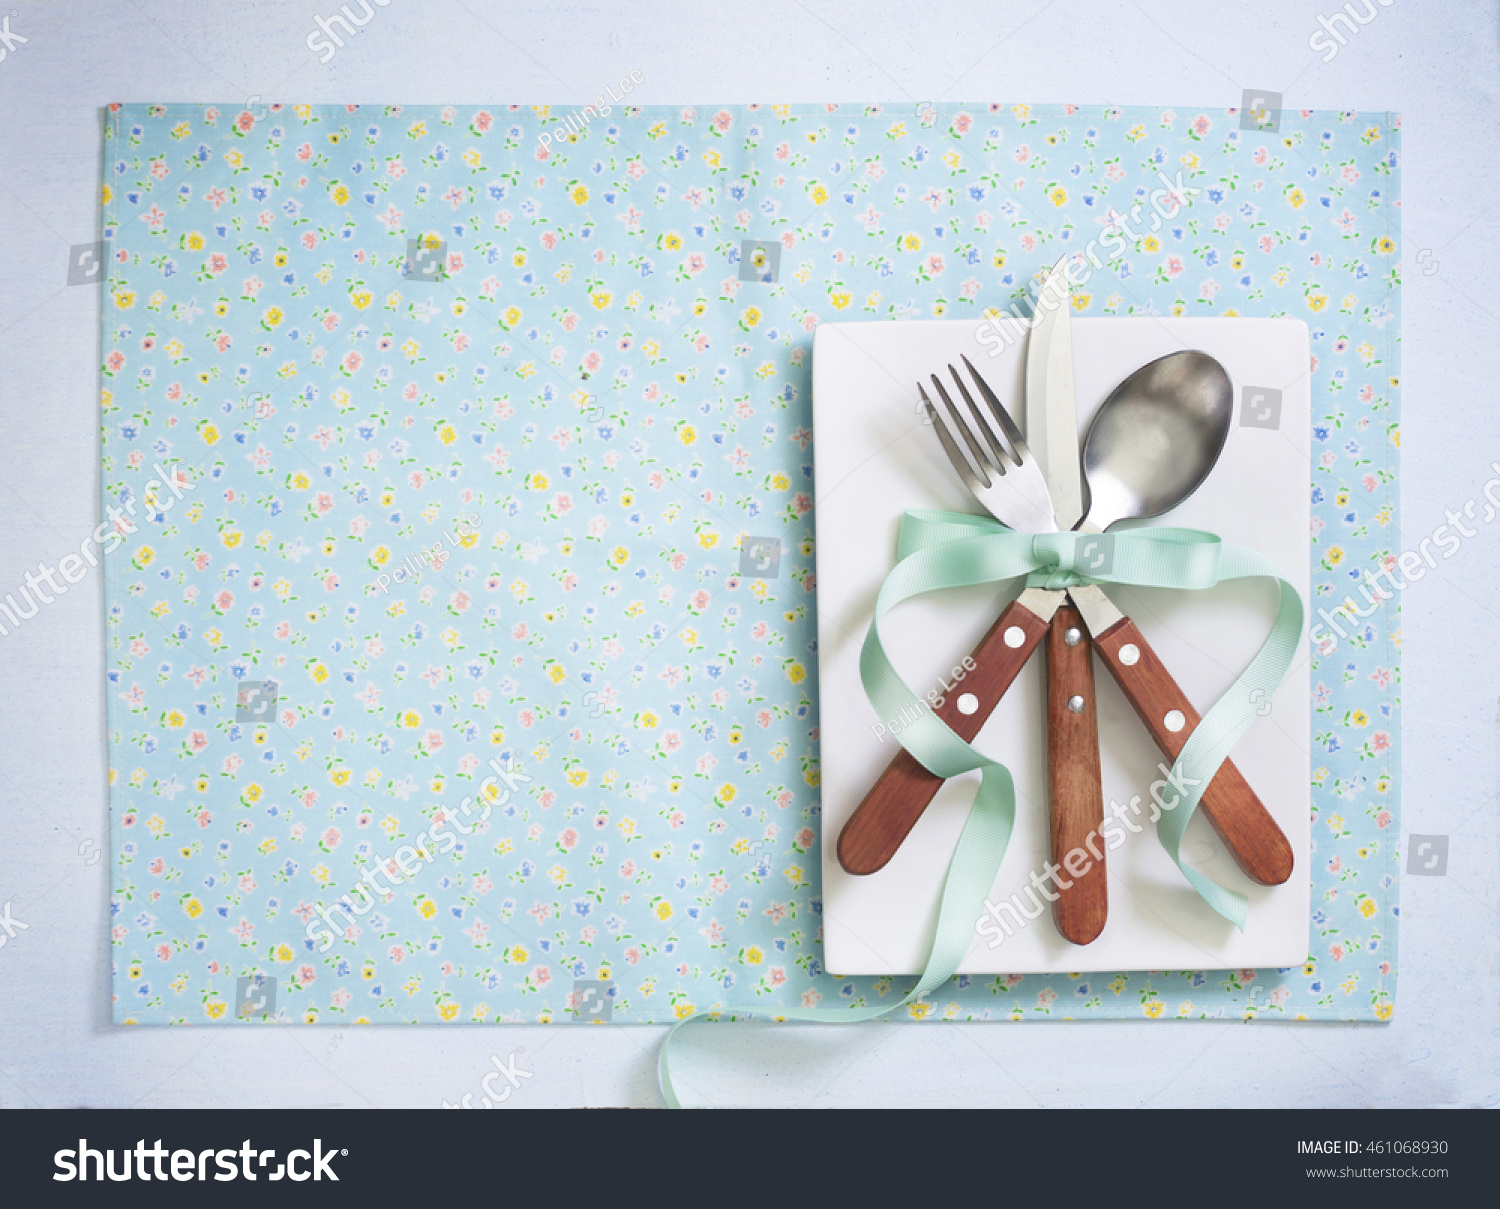 Thank You Message For Dinner Invitation are Great Ideas To Make Amazing Invitations Ideas